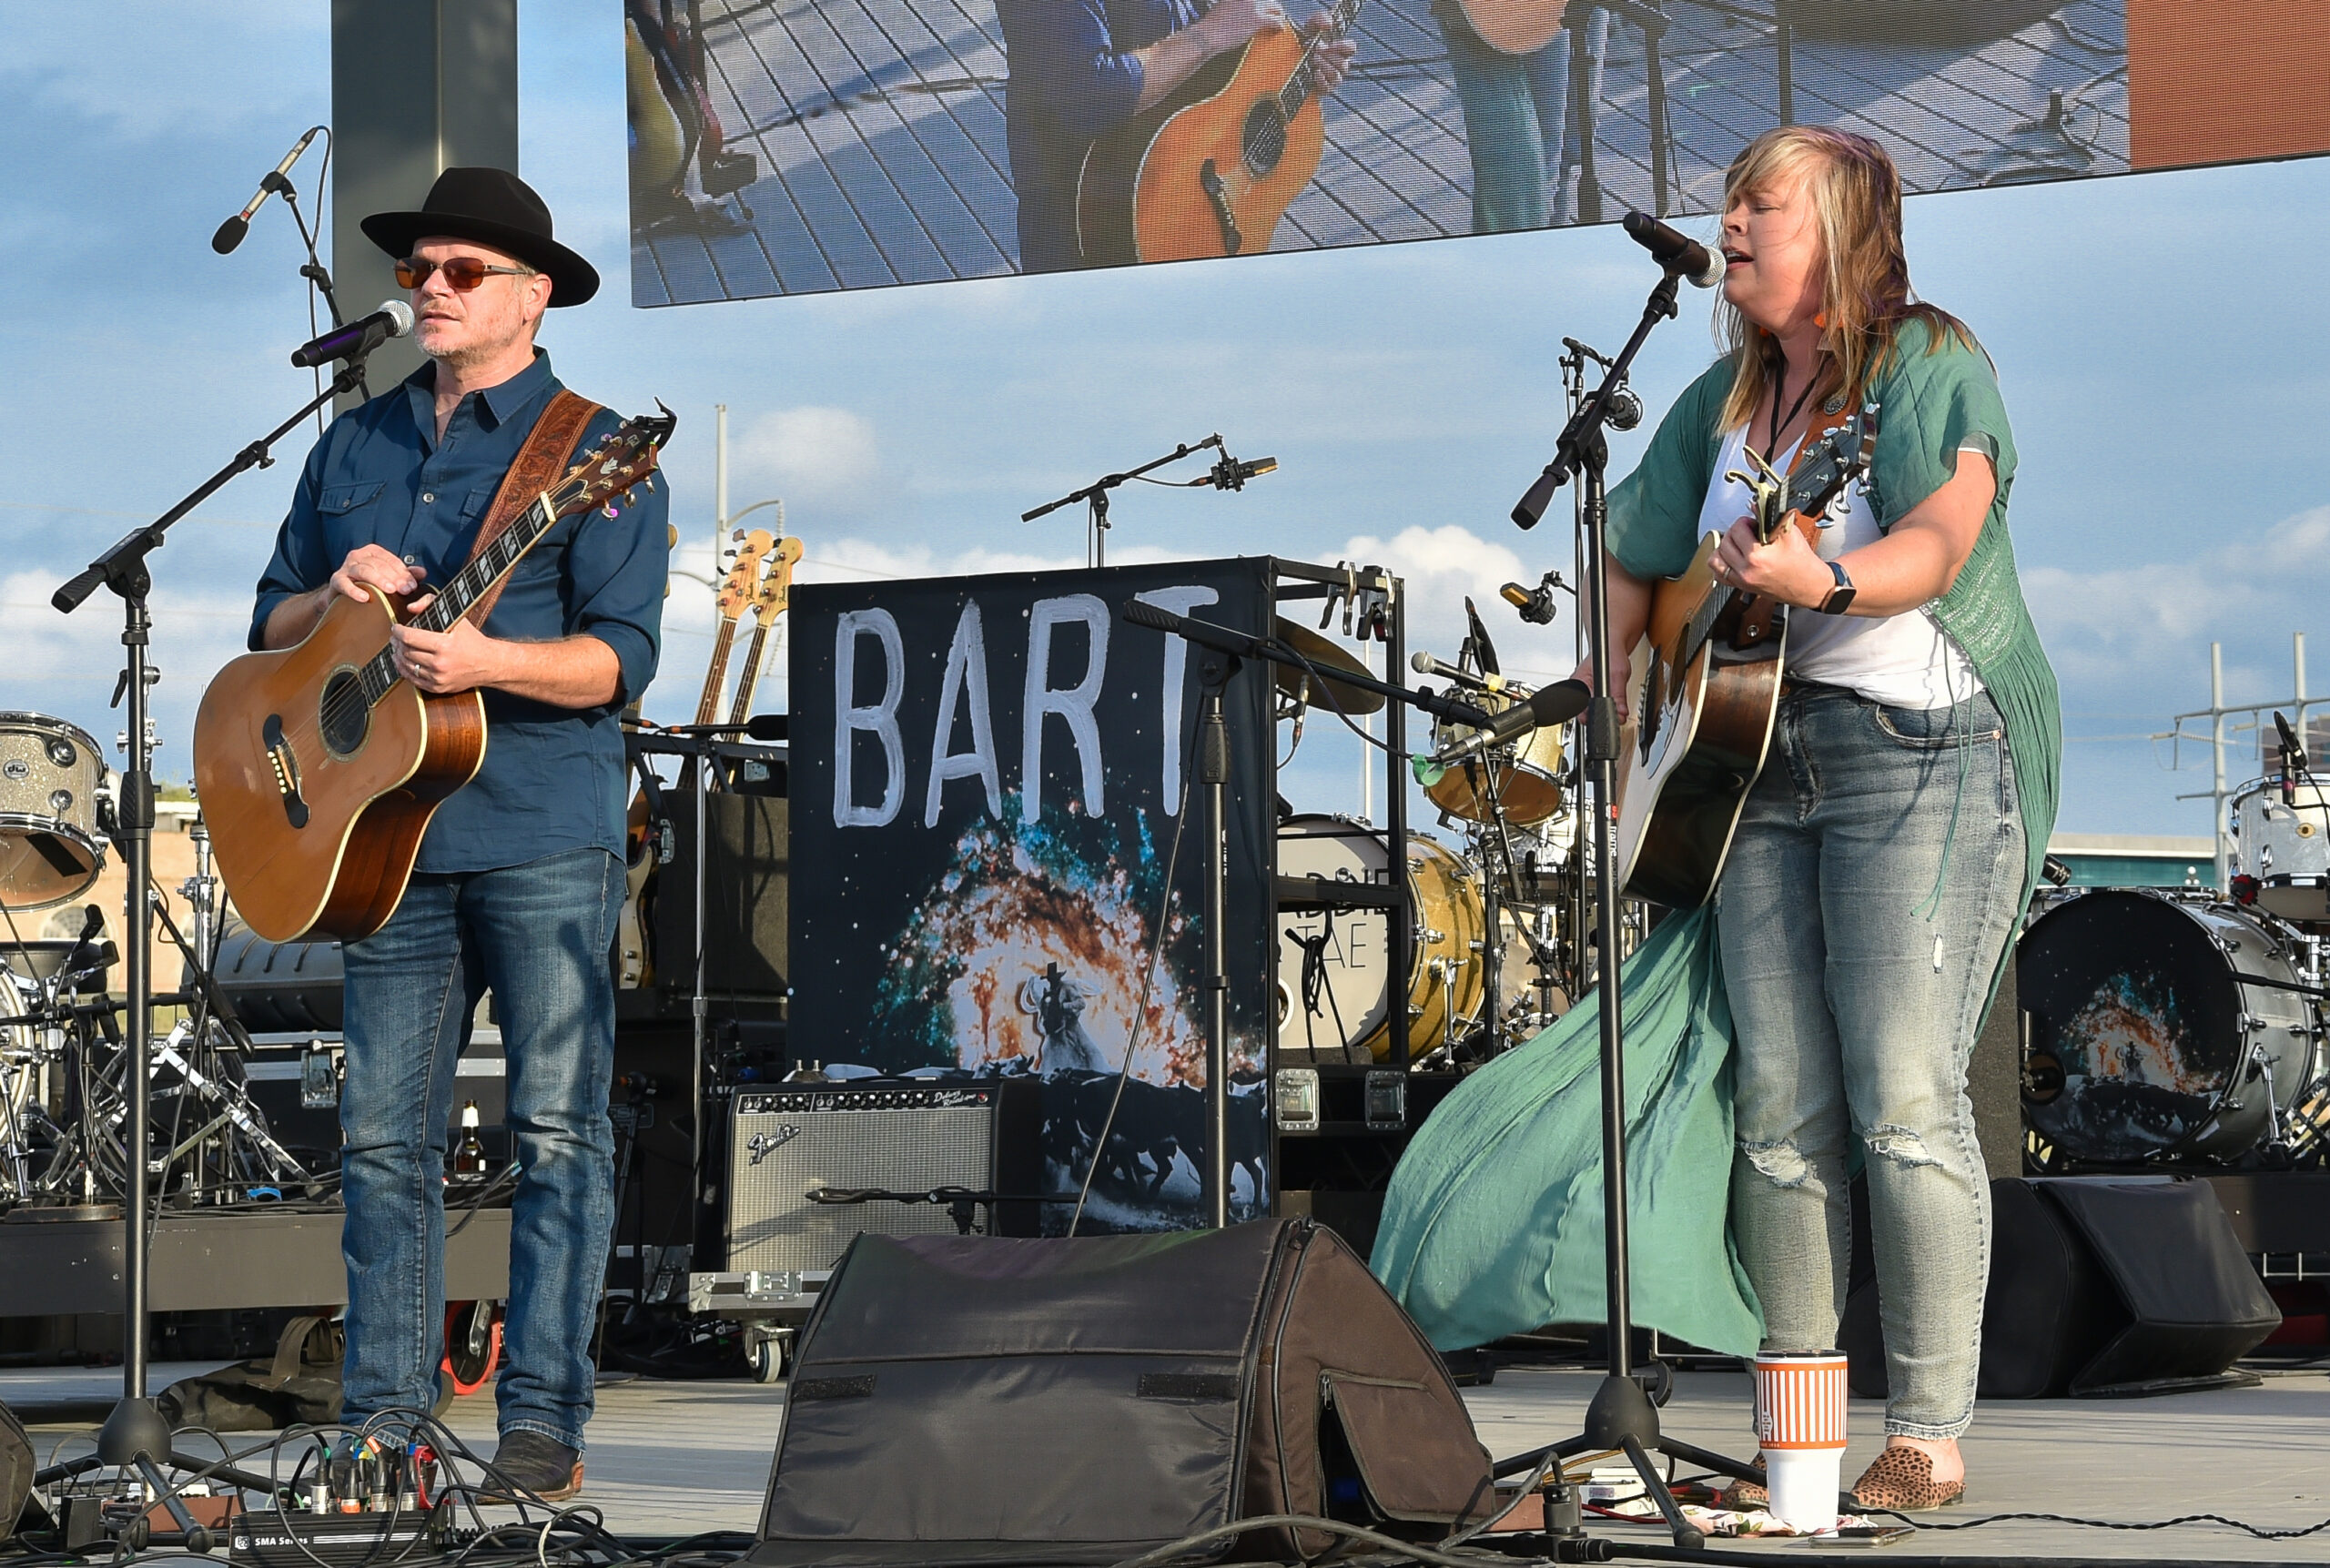 Jason Eady (L) and Courtney Patton (R) perform in concert during the River and Blues Festival at the Panther Island Pavilion in Fort Worth Texas on November 14, 2020. Photo © Manuel Nauta